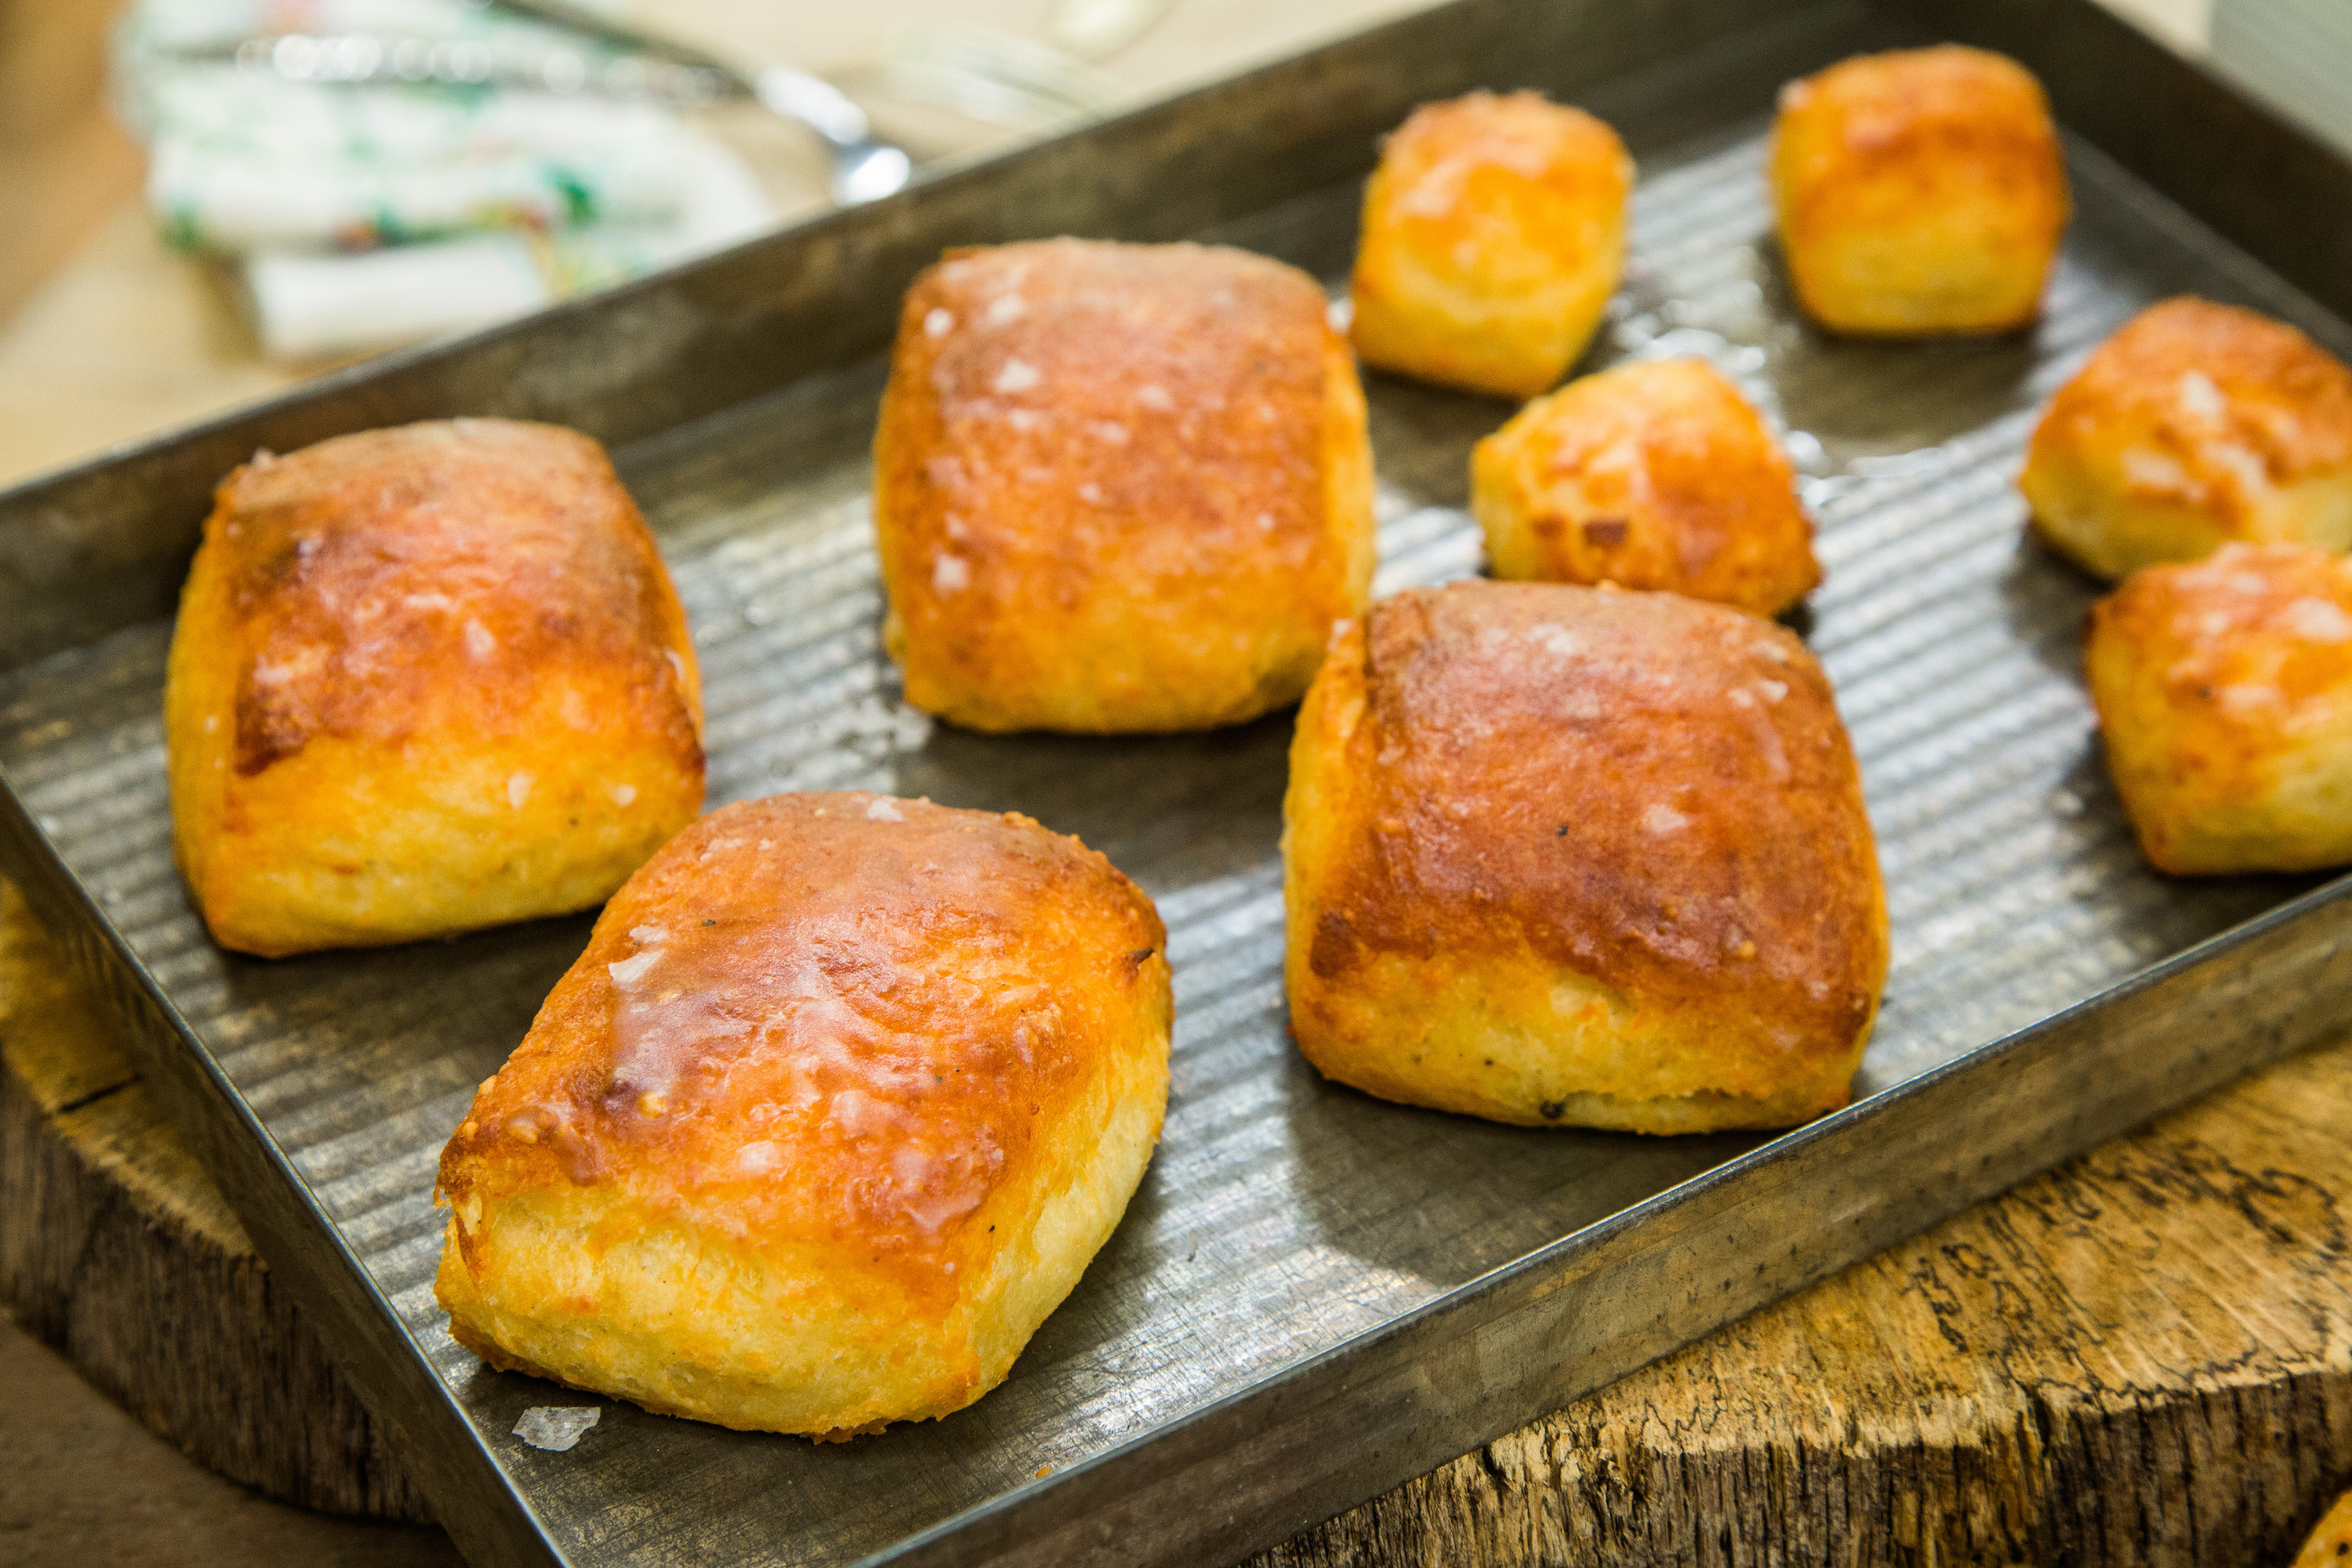 ... - Home & Family: Parmesan Black Pepper Biscuits | Hallmark Channel